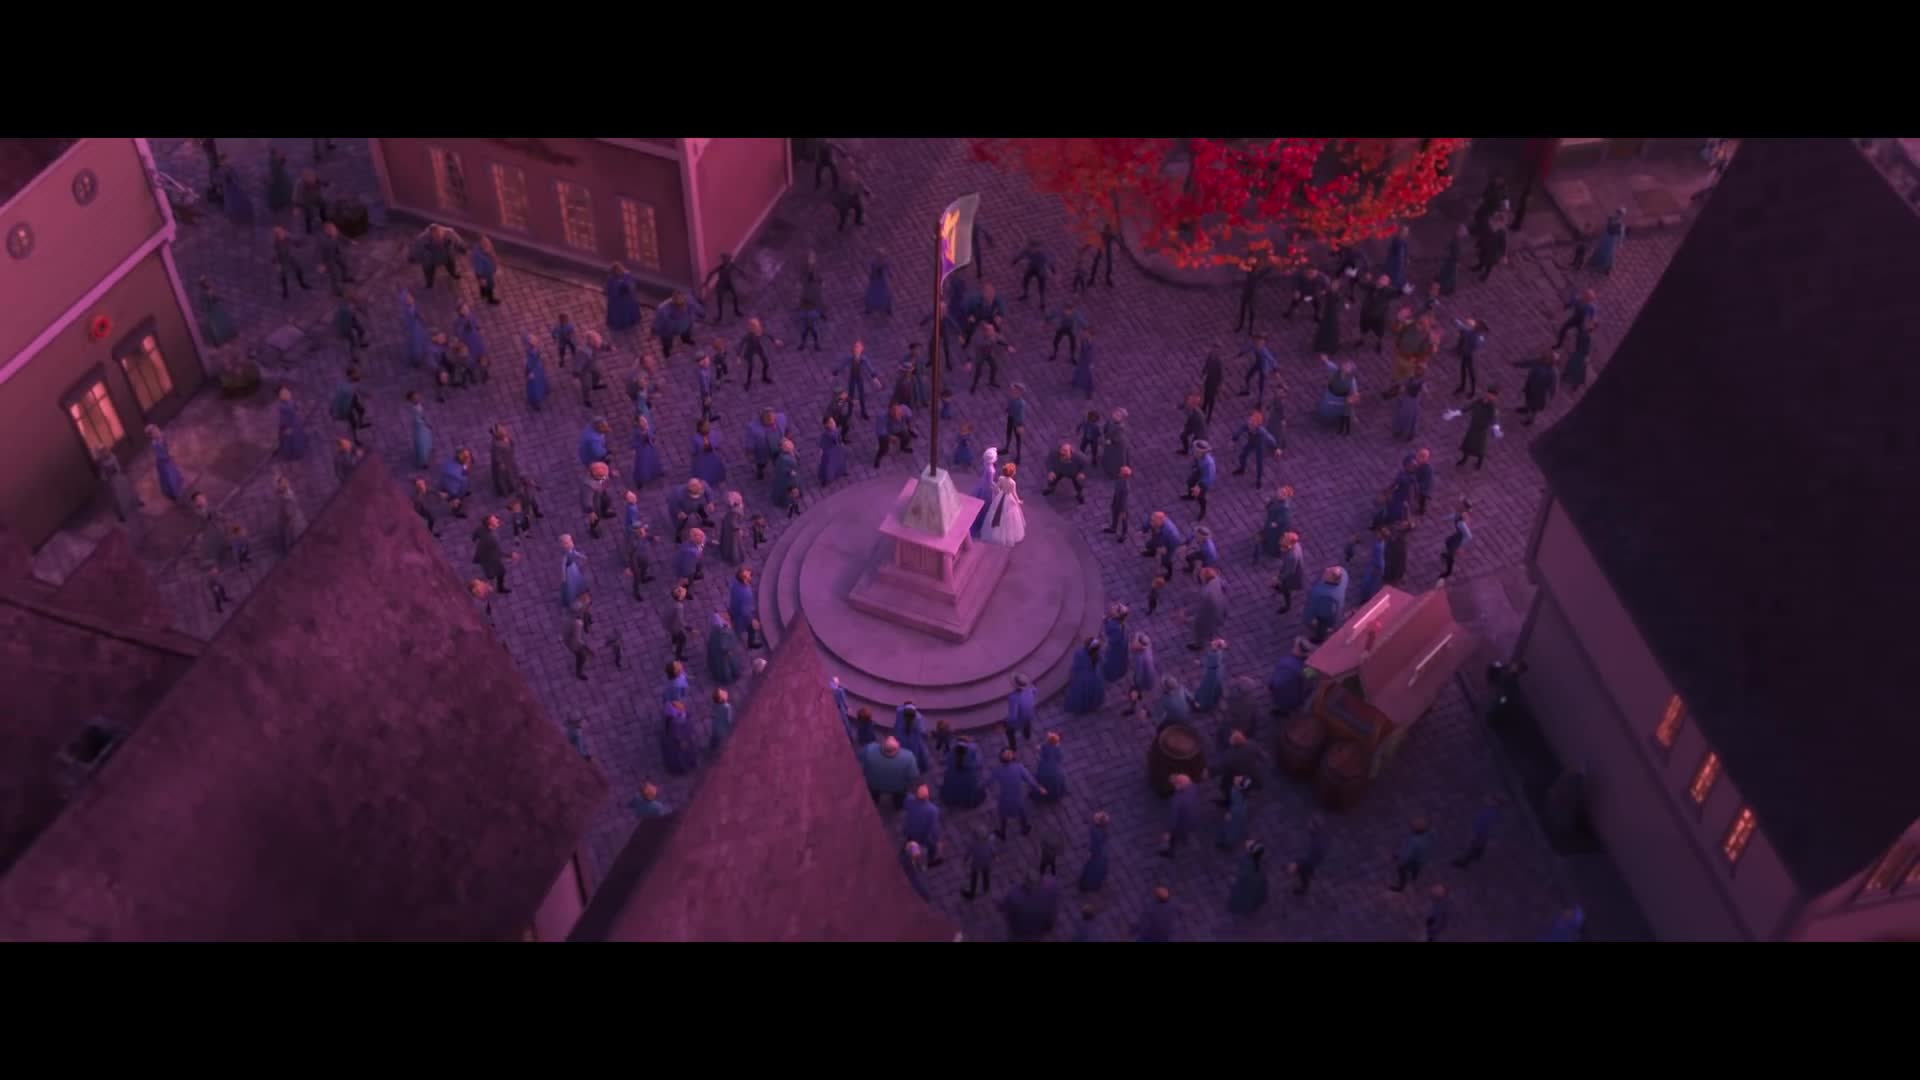 Frozen 2 - International Trailer #2 [HD] screen capture